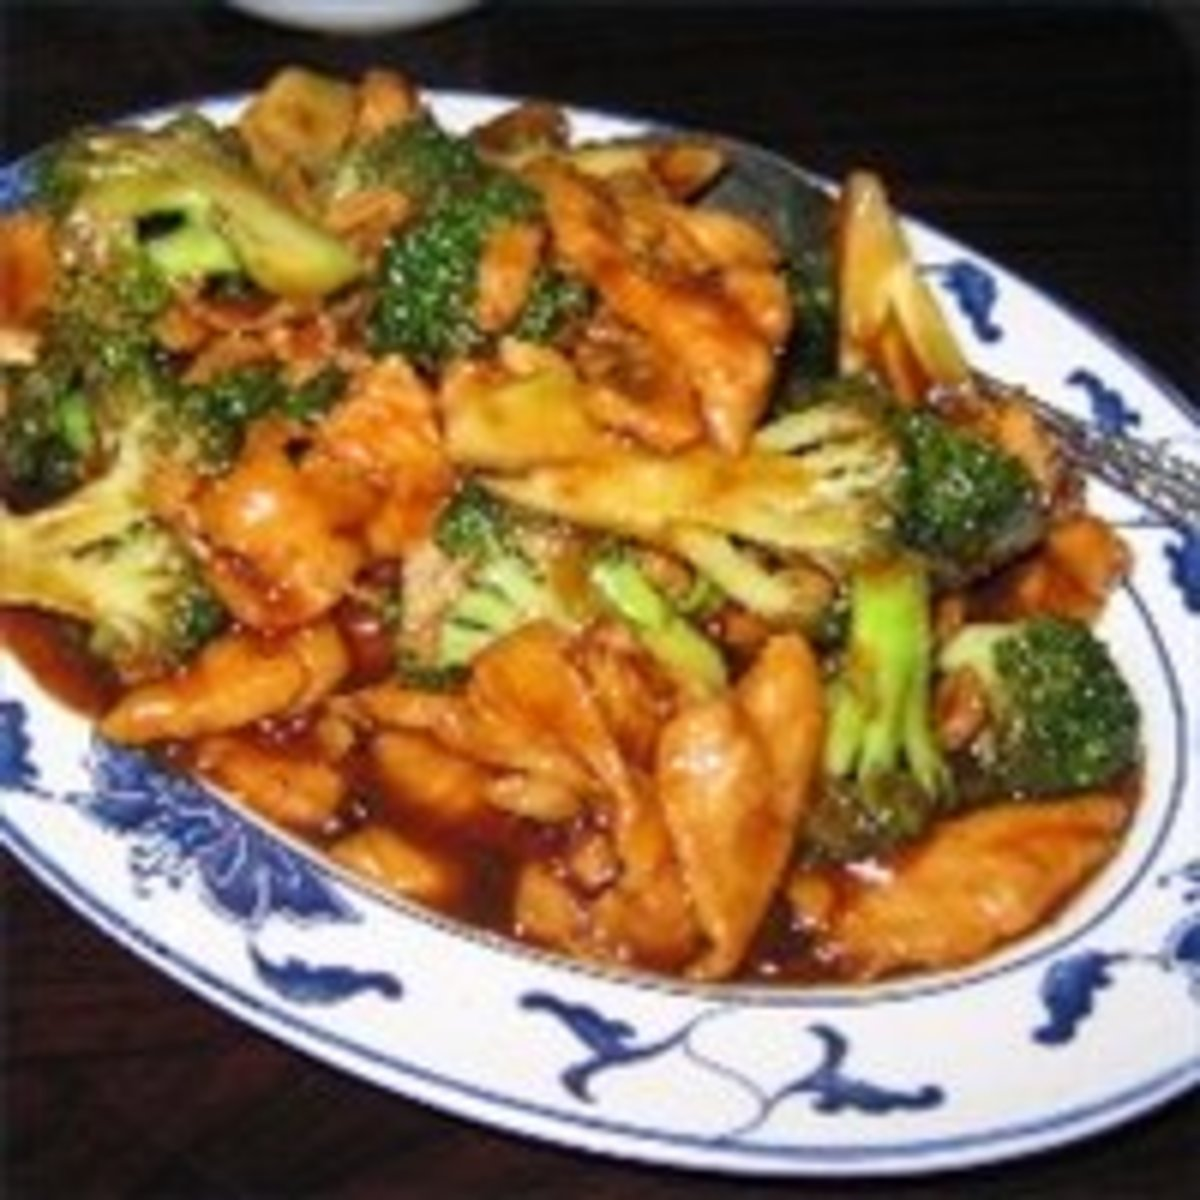 How to Cook Chicken with Broccoli Stir Fry